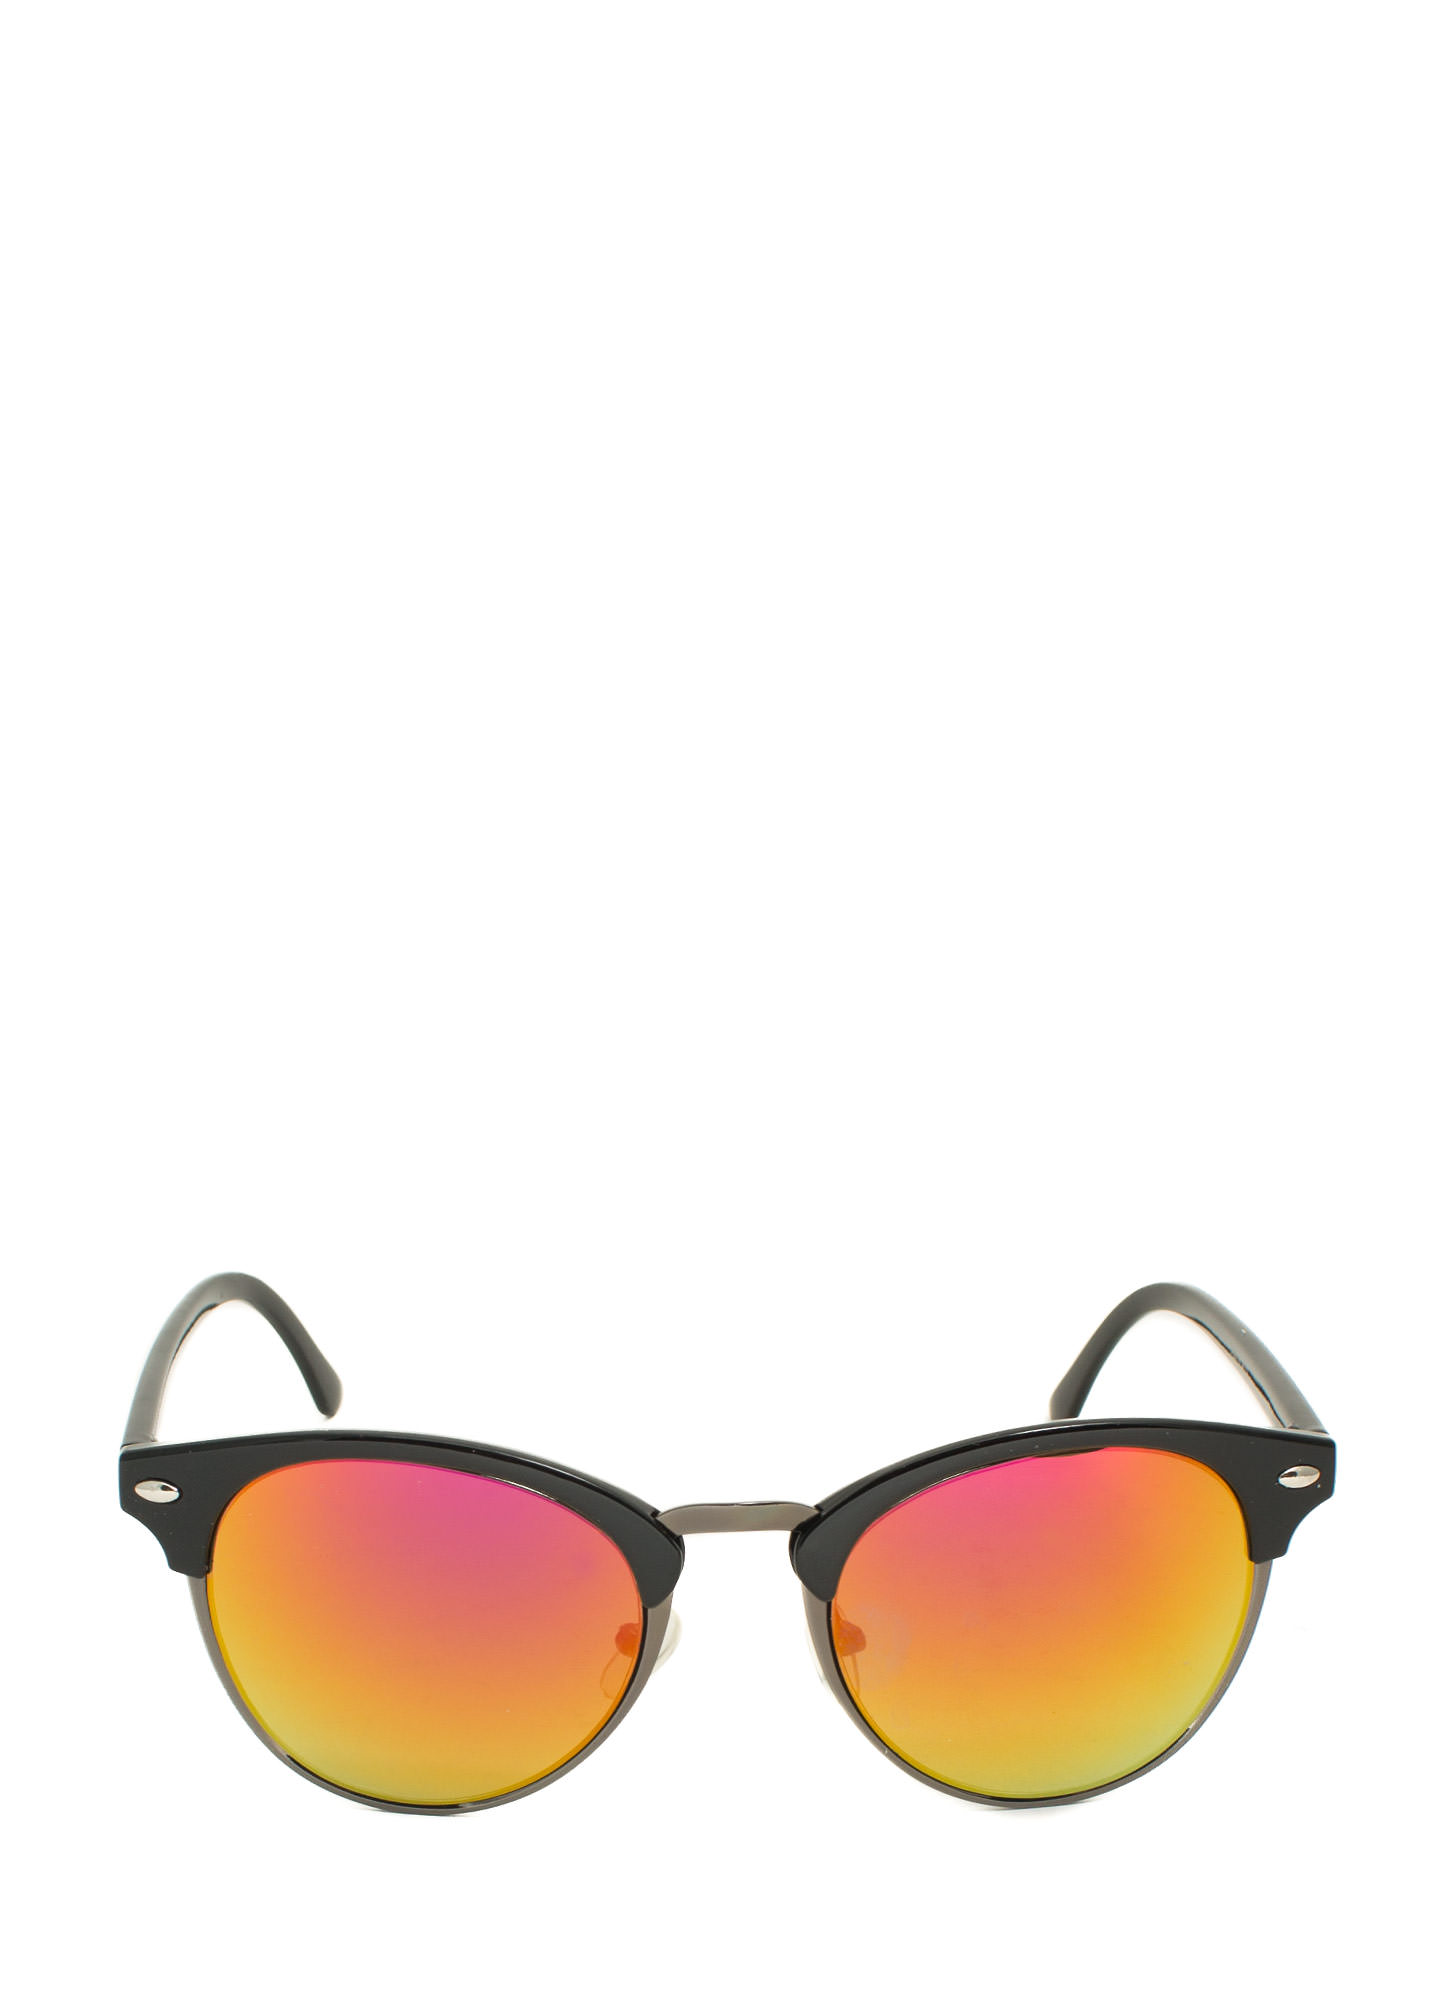 Top Accent Reflective Sunglasses ORANGEBLACK